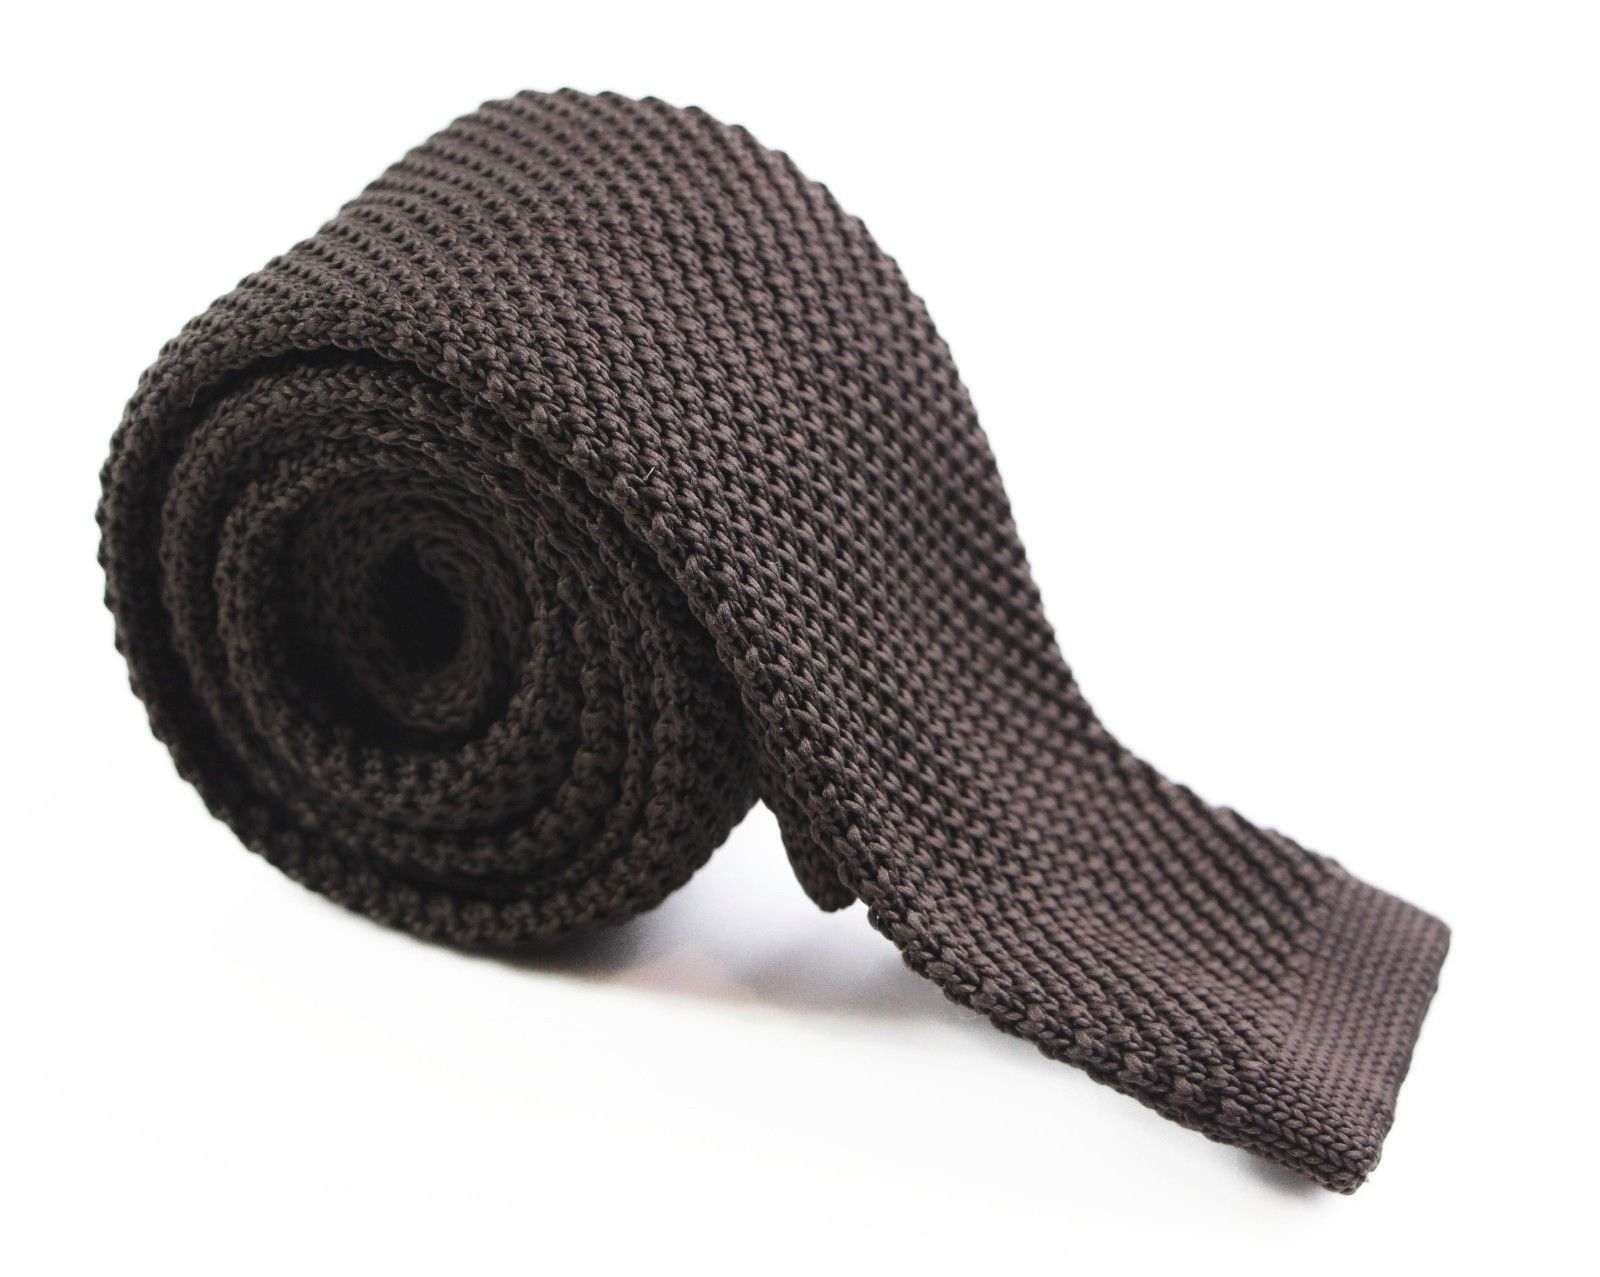 2676ca2fa850 Dark Brown Knit Tie - Shop Mens Ties Online | Ties Australia